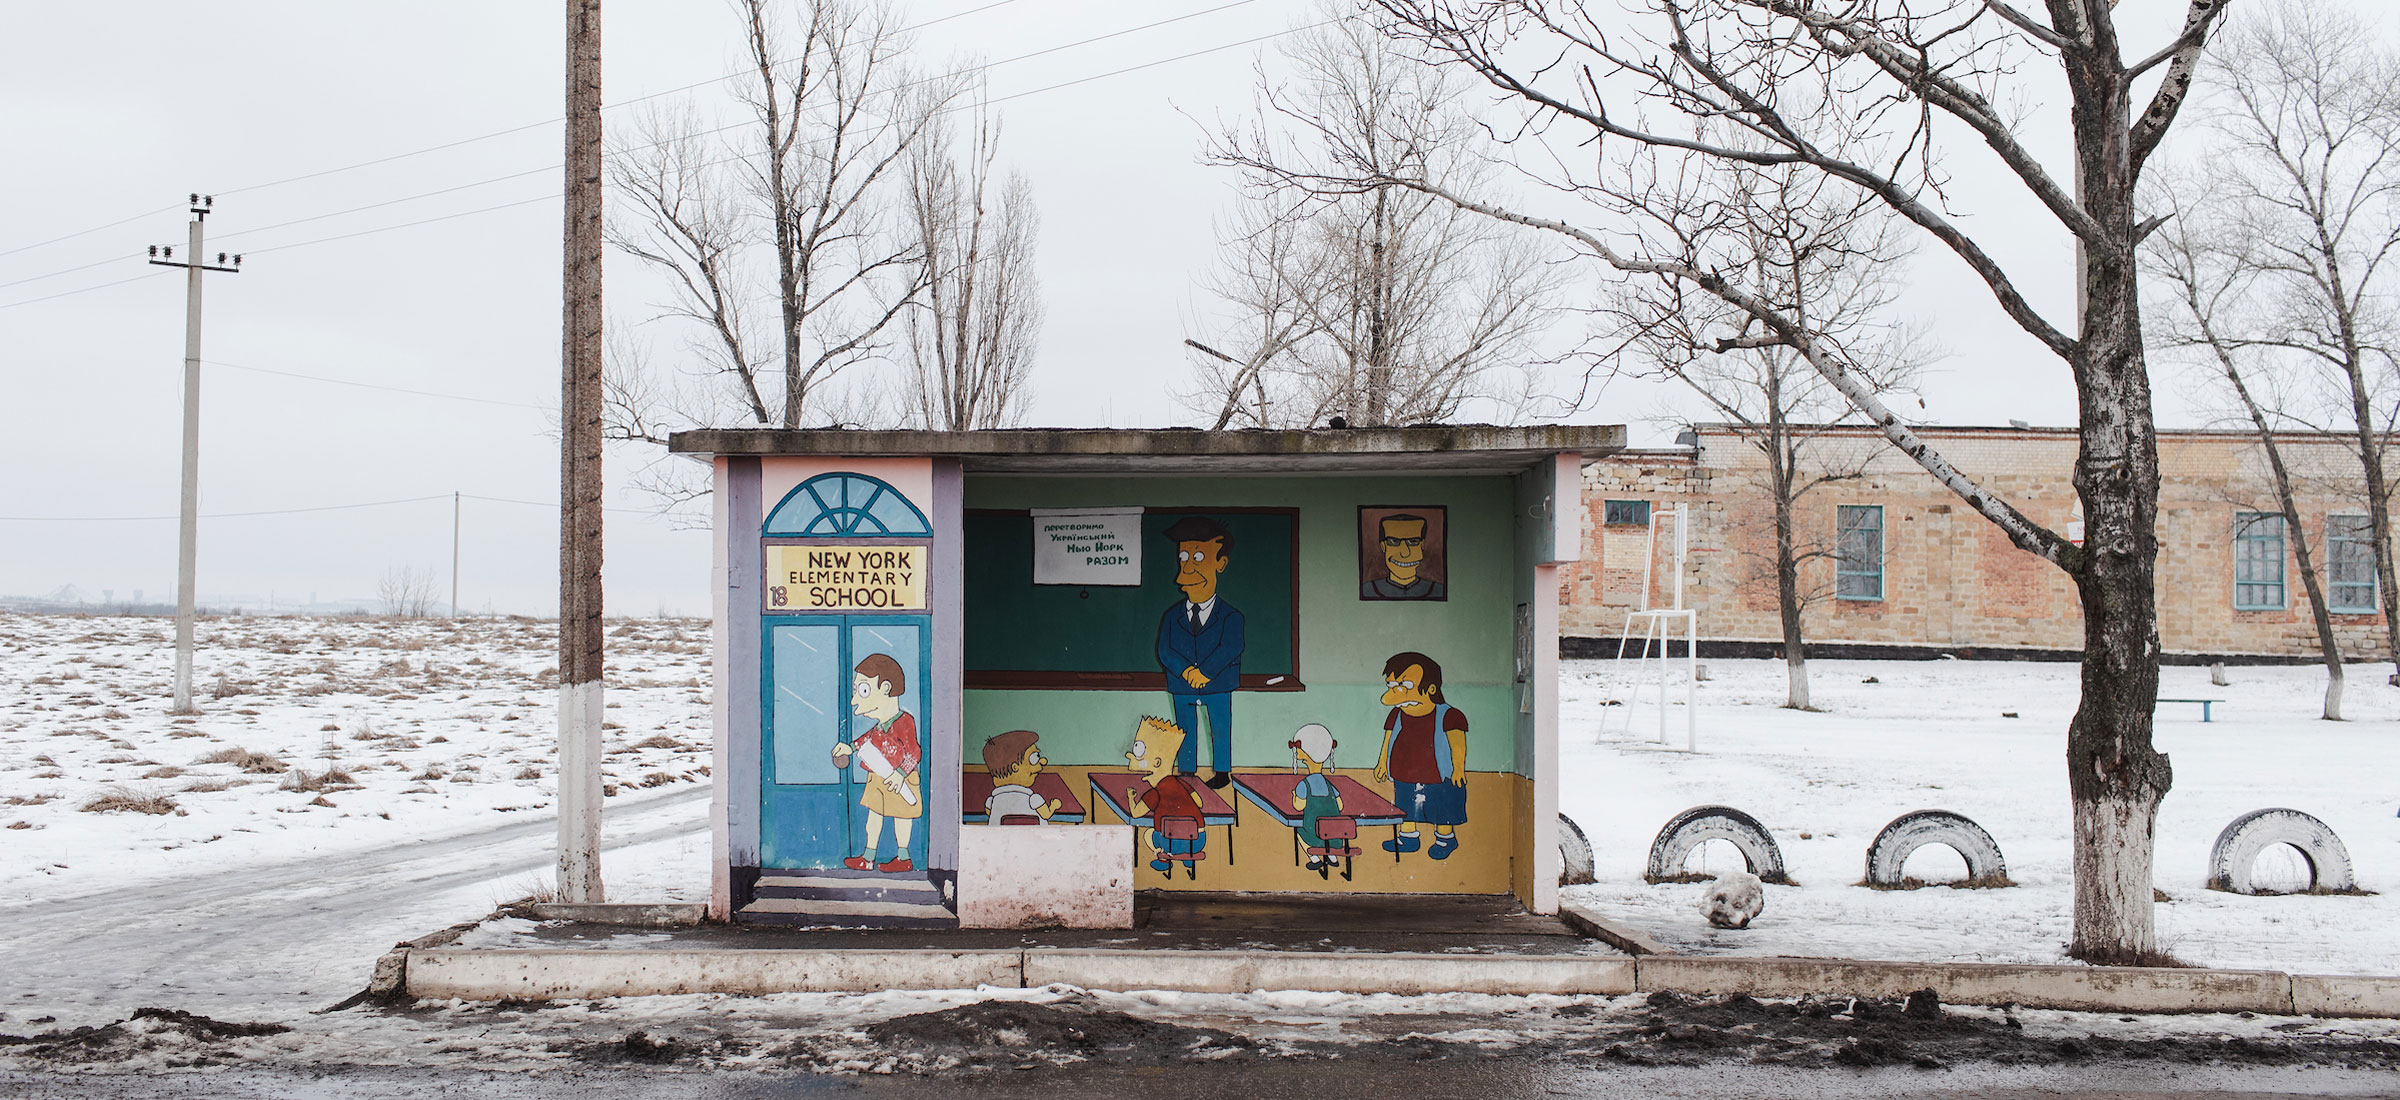 The other New York: the small Ukrainian town fighting to recover its historic name